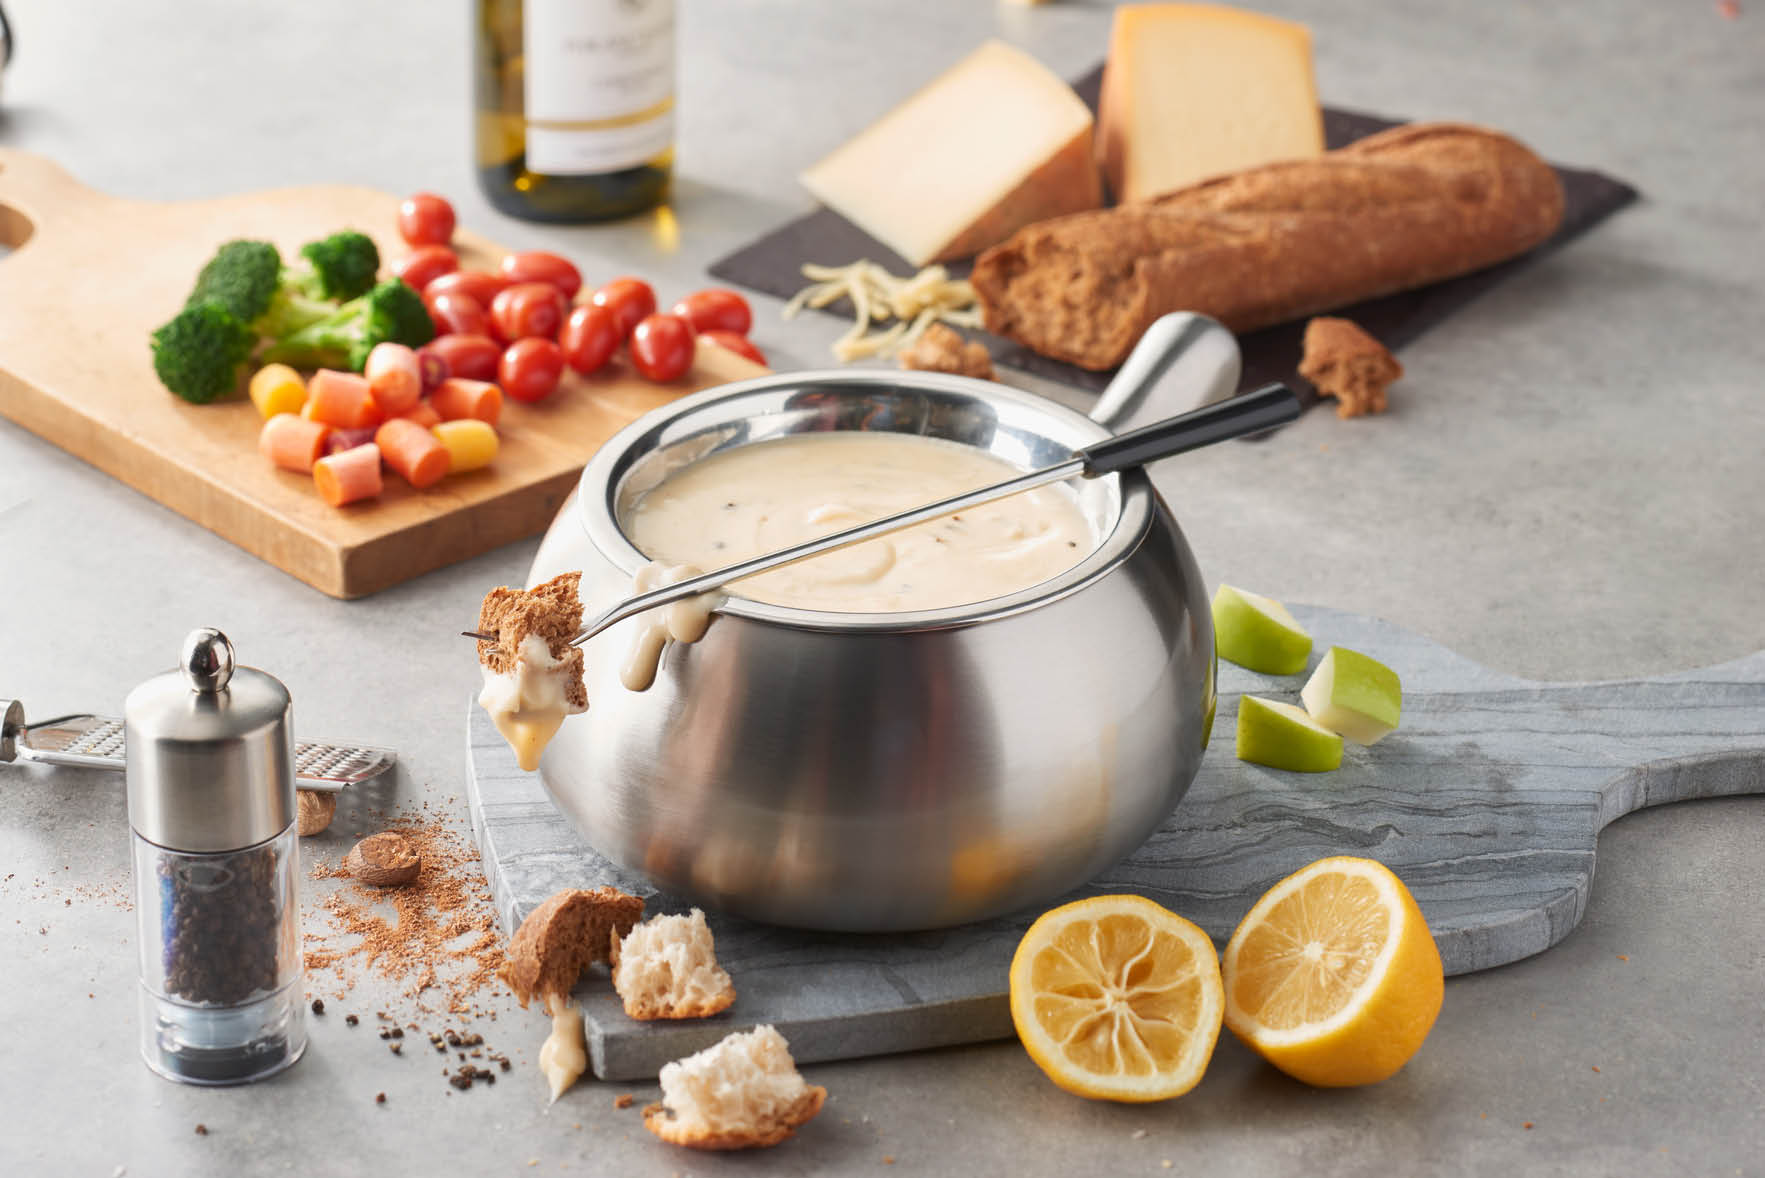 Cheese fondue with vegetables, bread and fresh fruit